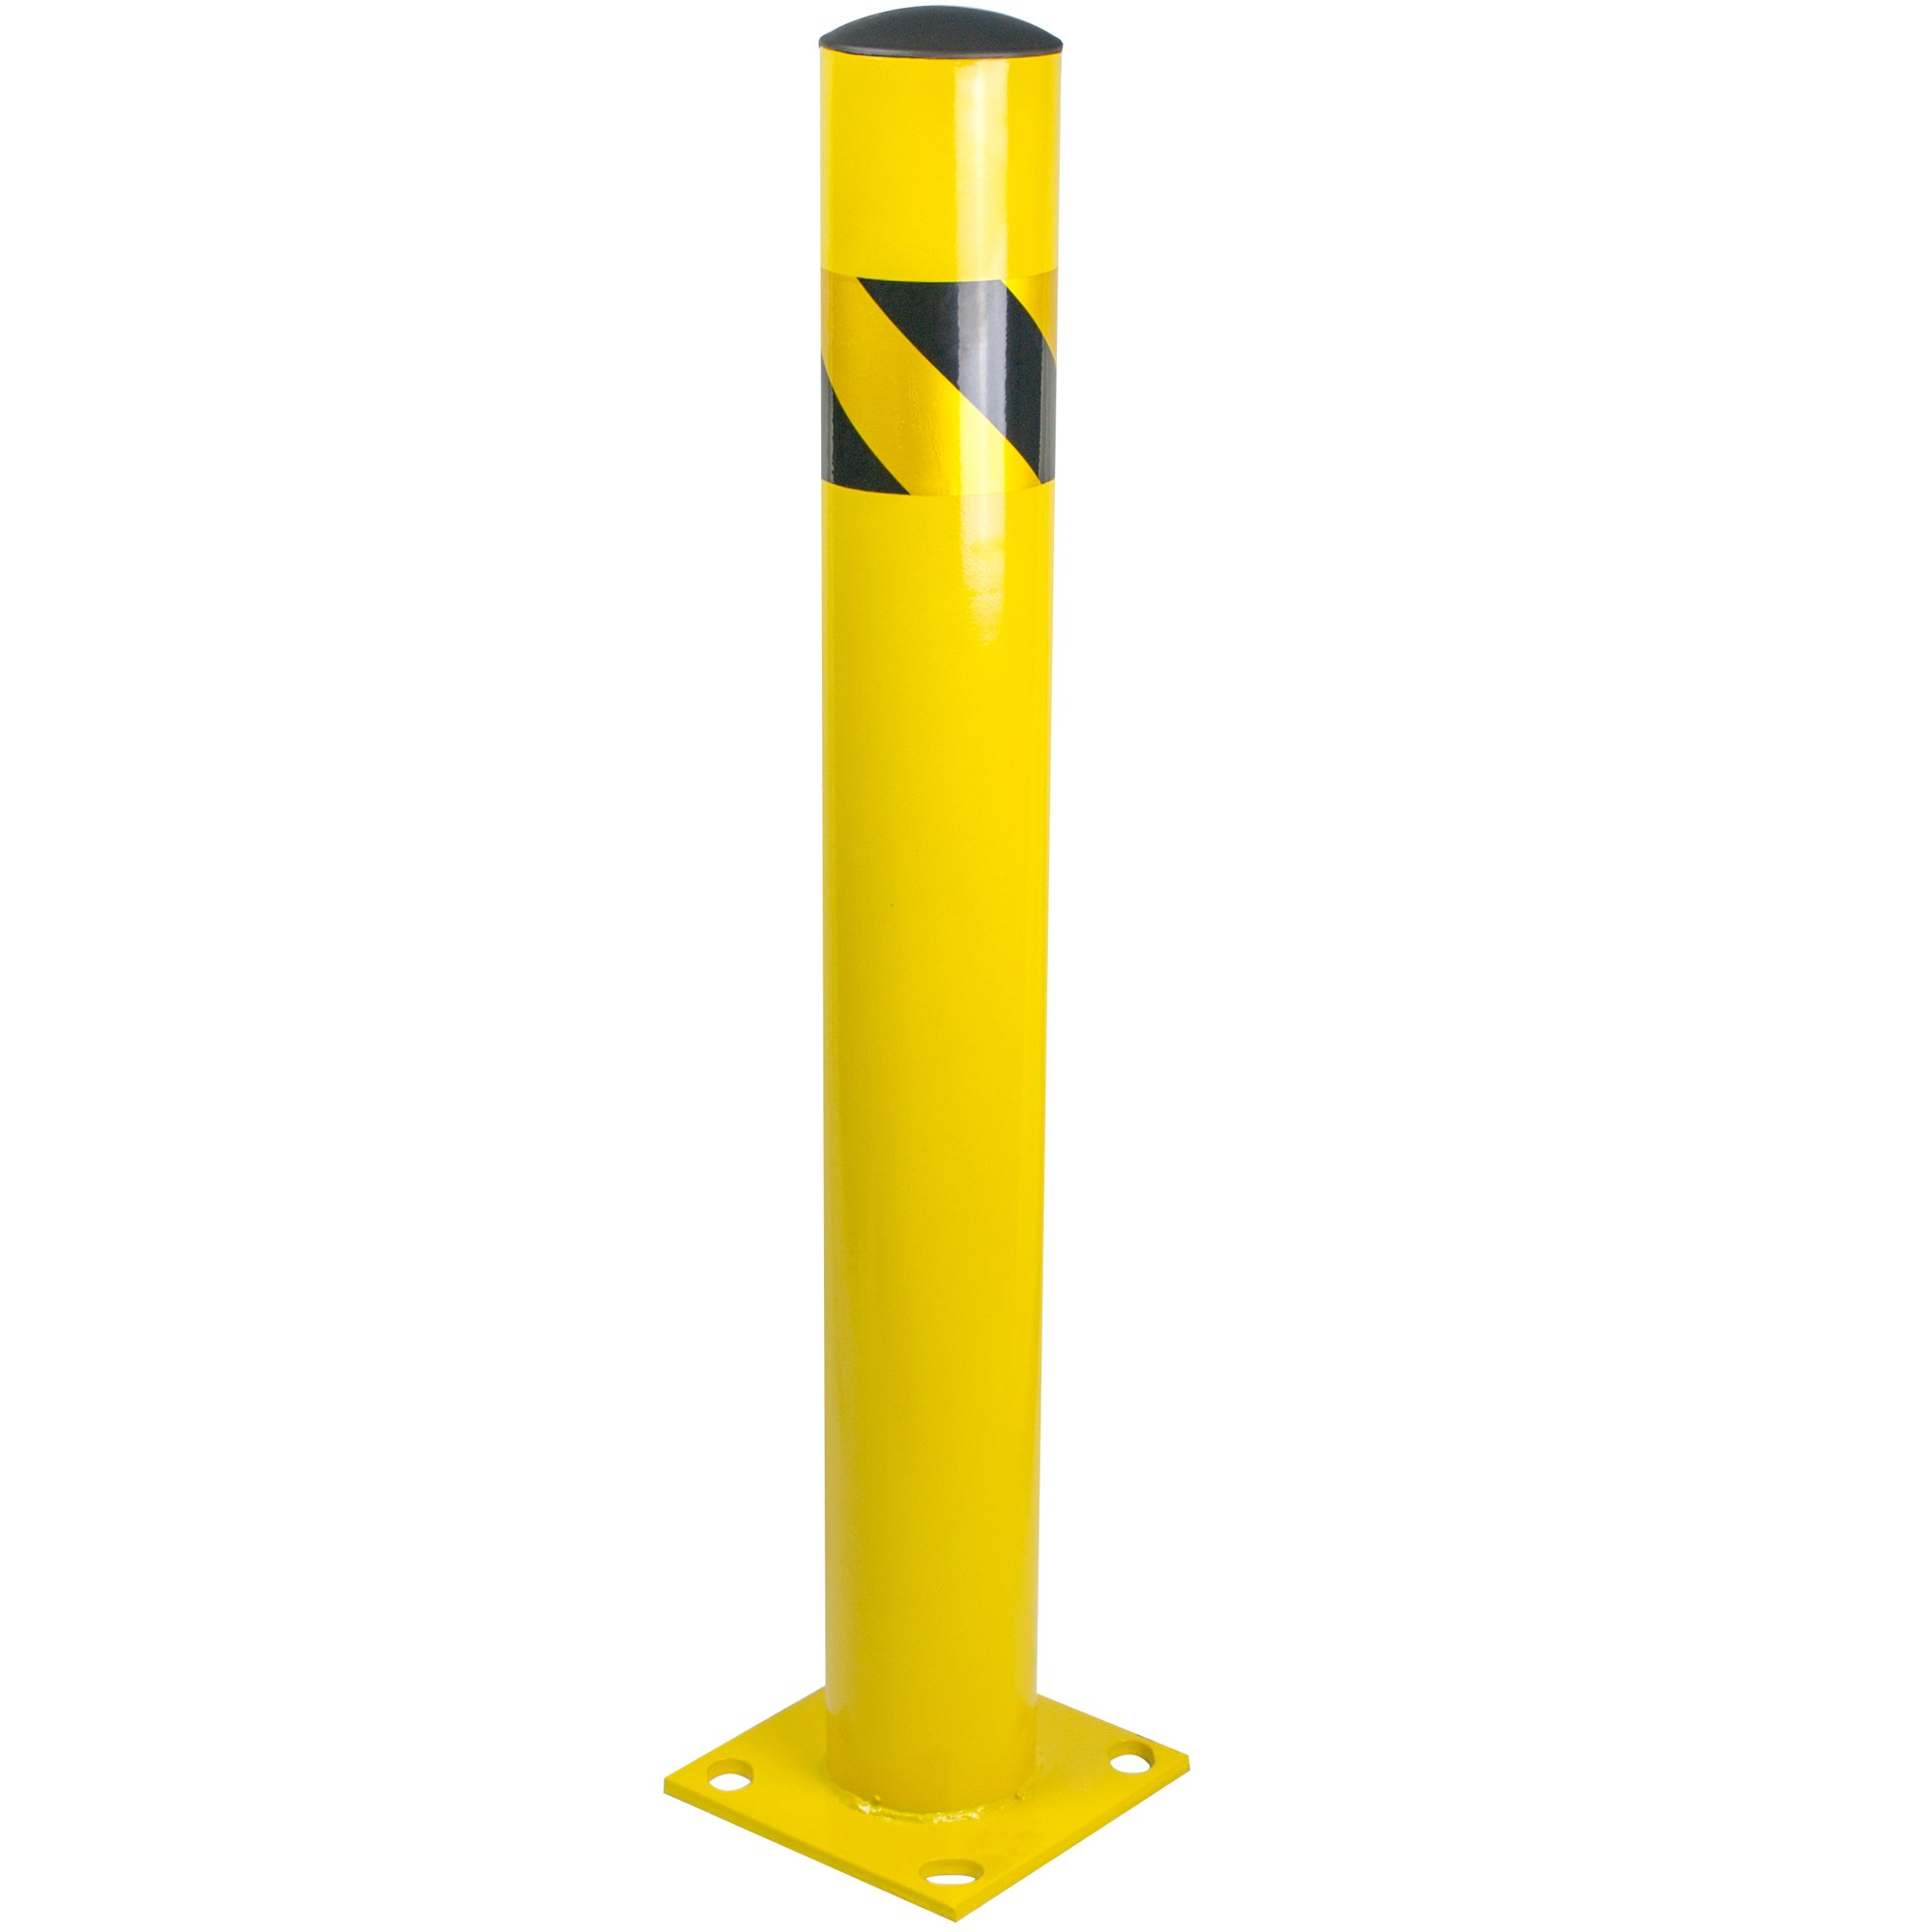 Bollard Post - Steel Safety Barrier Protection- Yellow Powder Coat 4.5'' Diameter 36'' Tall BW4536